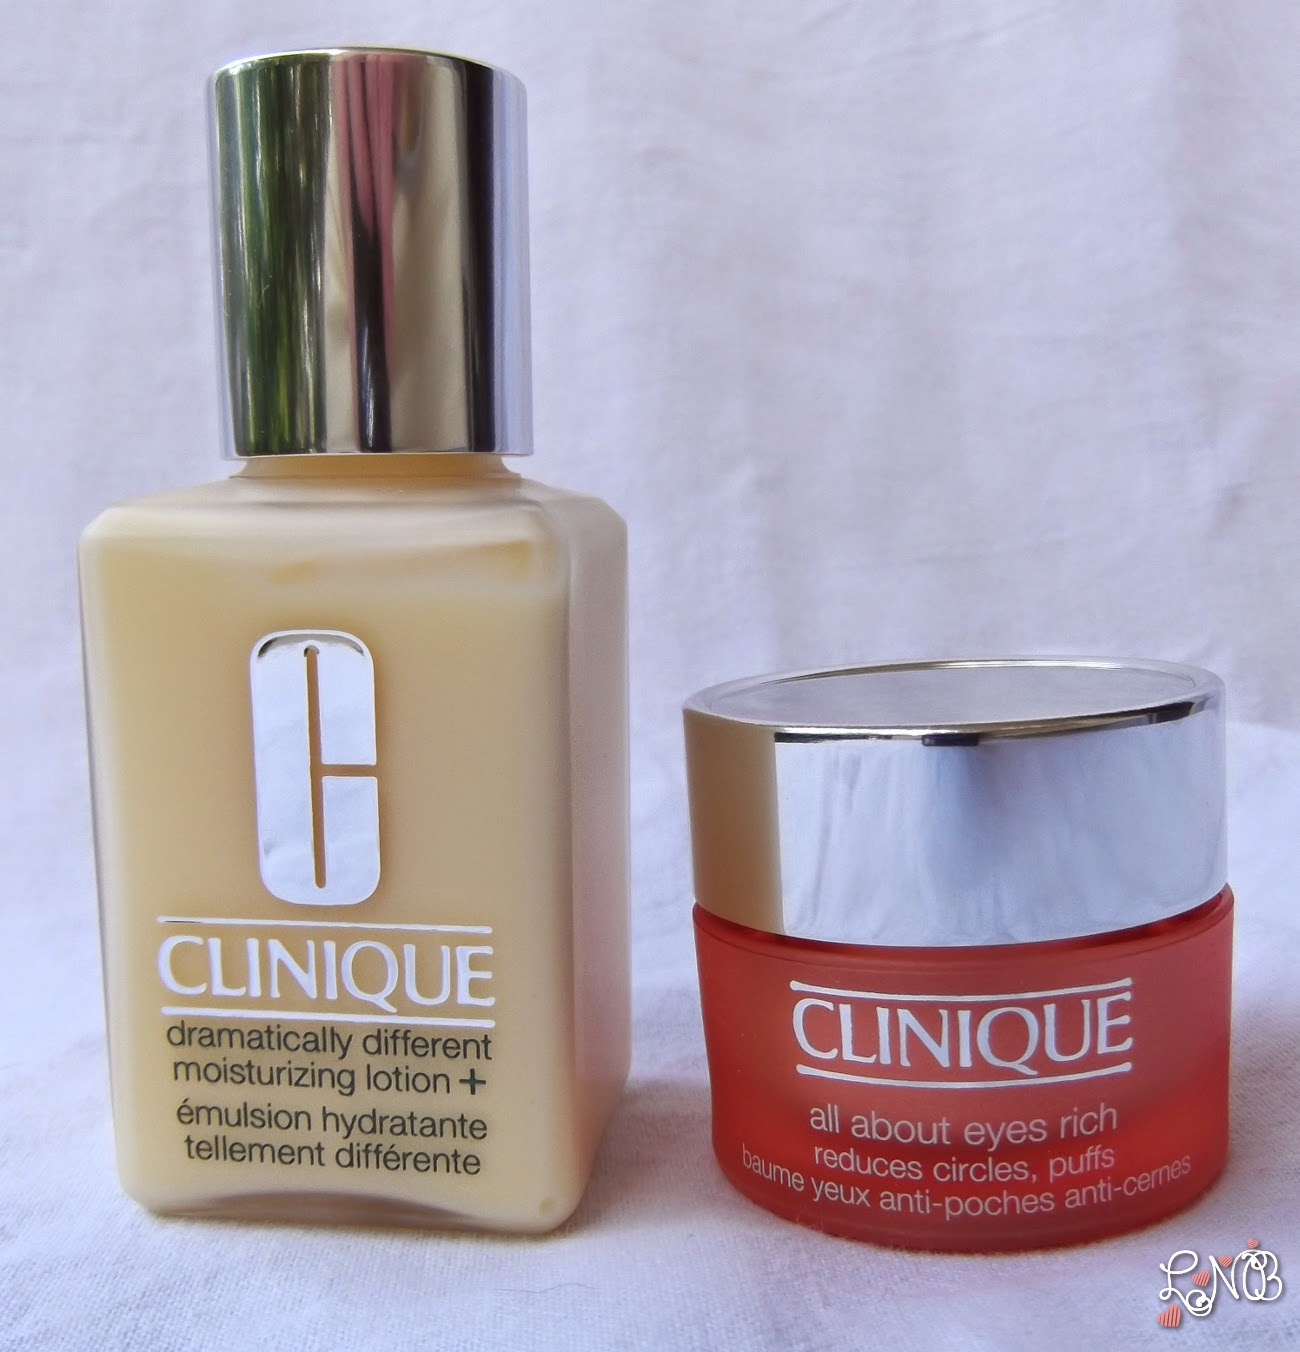 CLINIQUE  All About Eyes Rich - Dramatically Different Moisturizing Lotion+